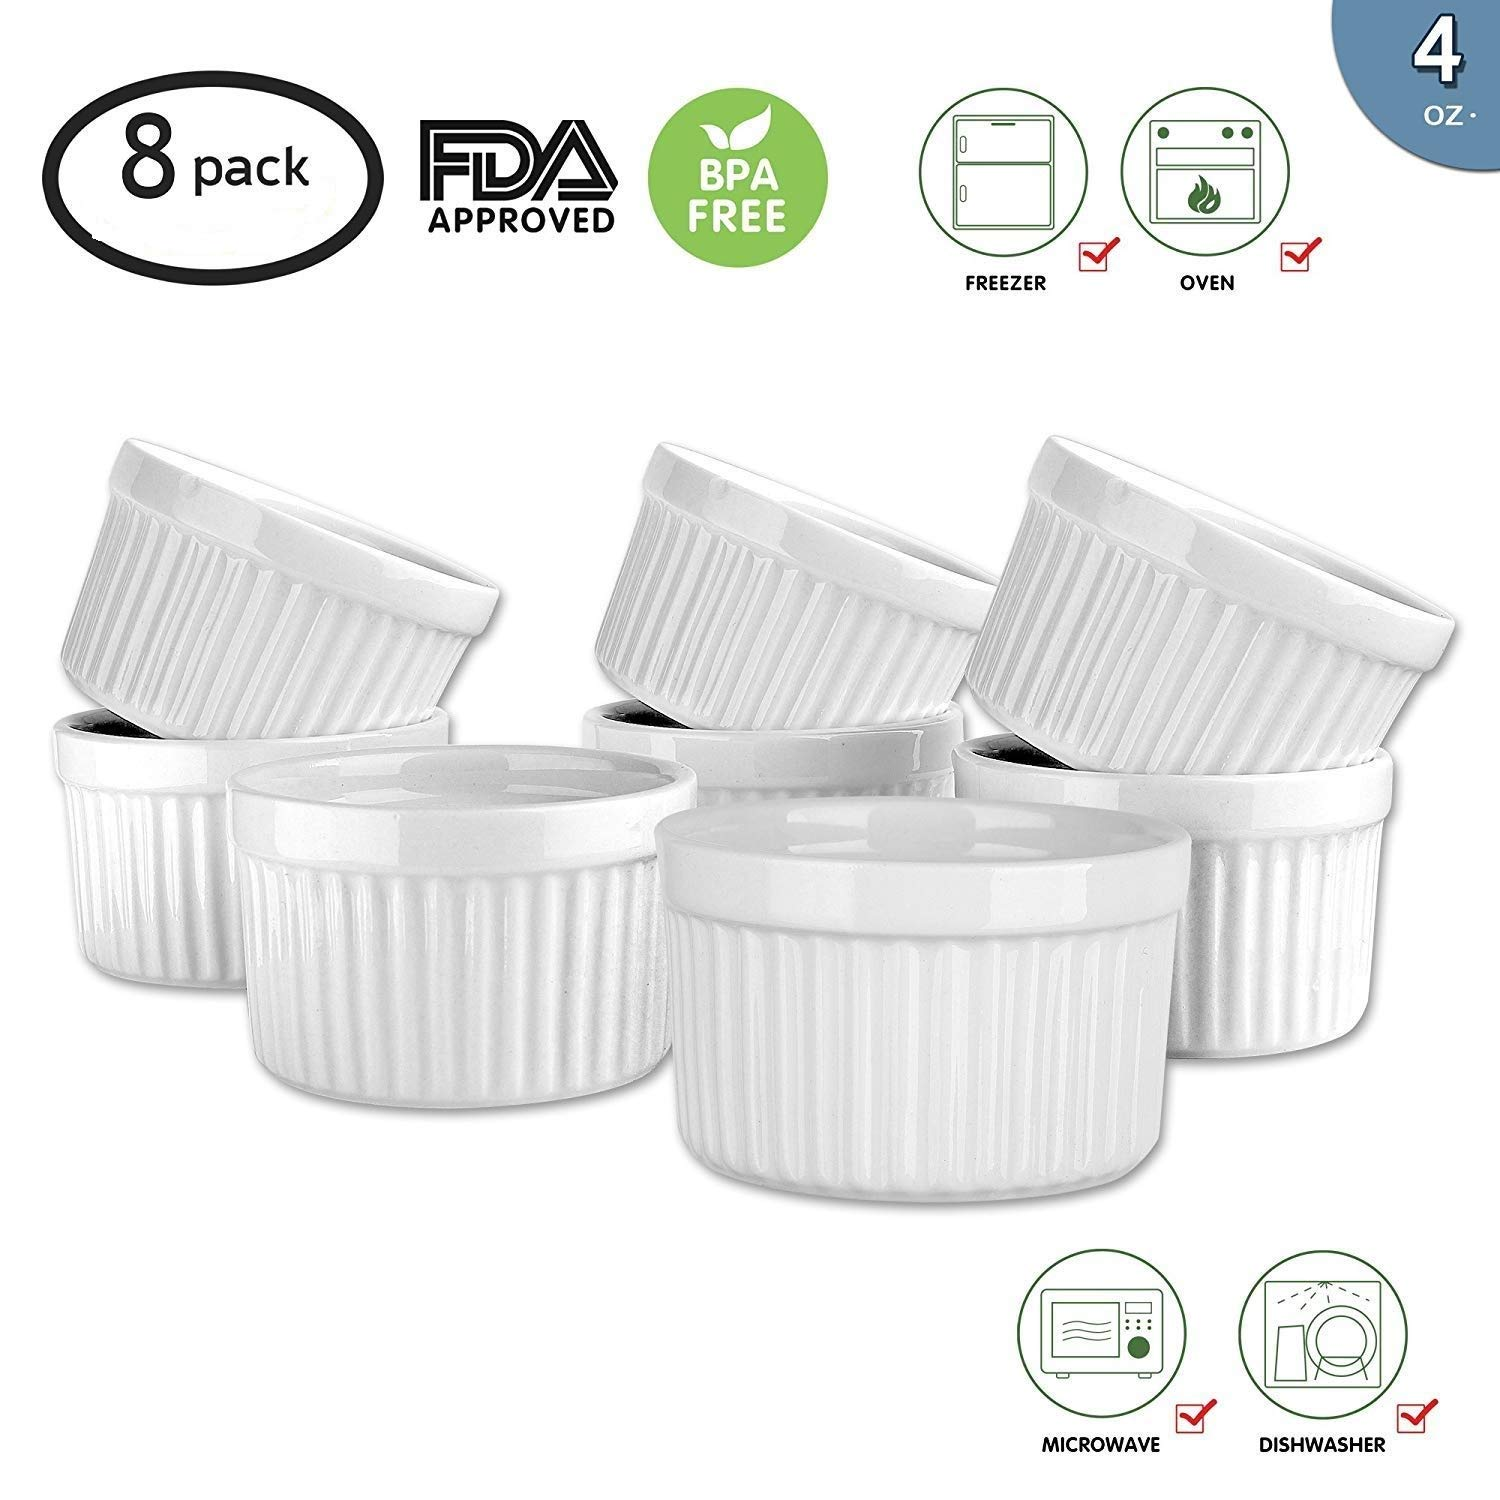 MAMA-AI Encheng 4 oz. Porcelain Ramekins, Porcelain Souffle Dishes, Ramekins for Souffle, Creme Brulee and Dipping Sauces - Set of 8, White